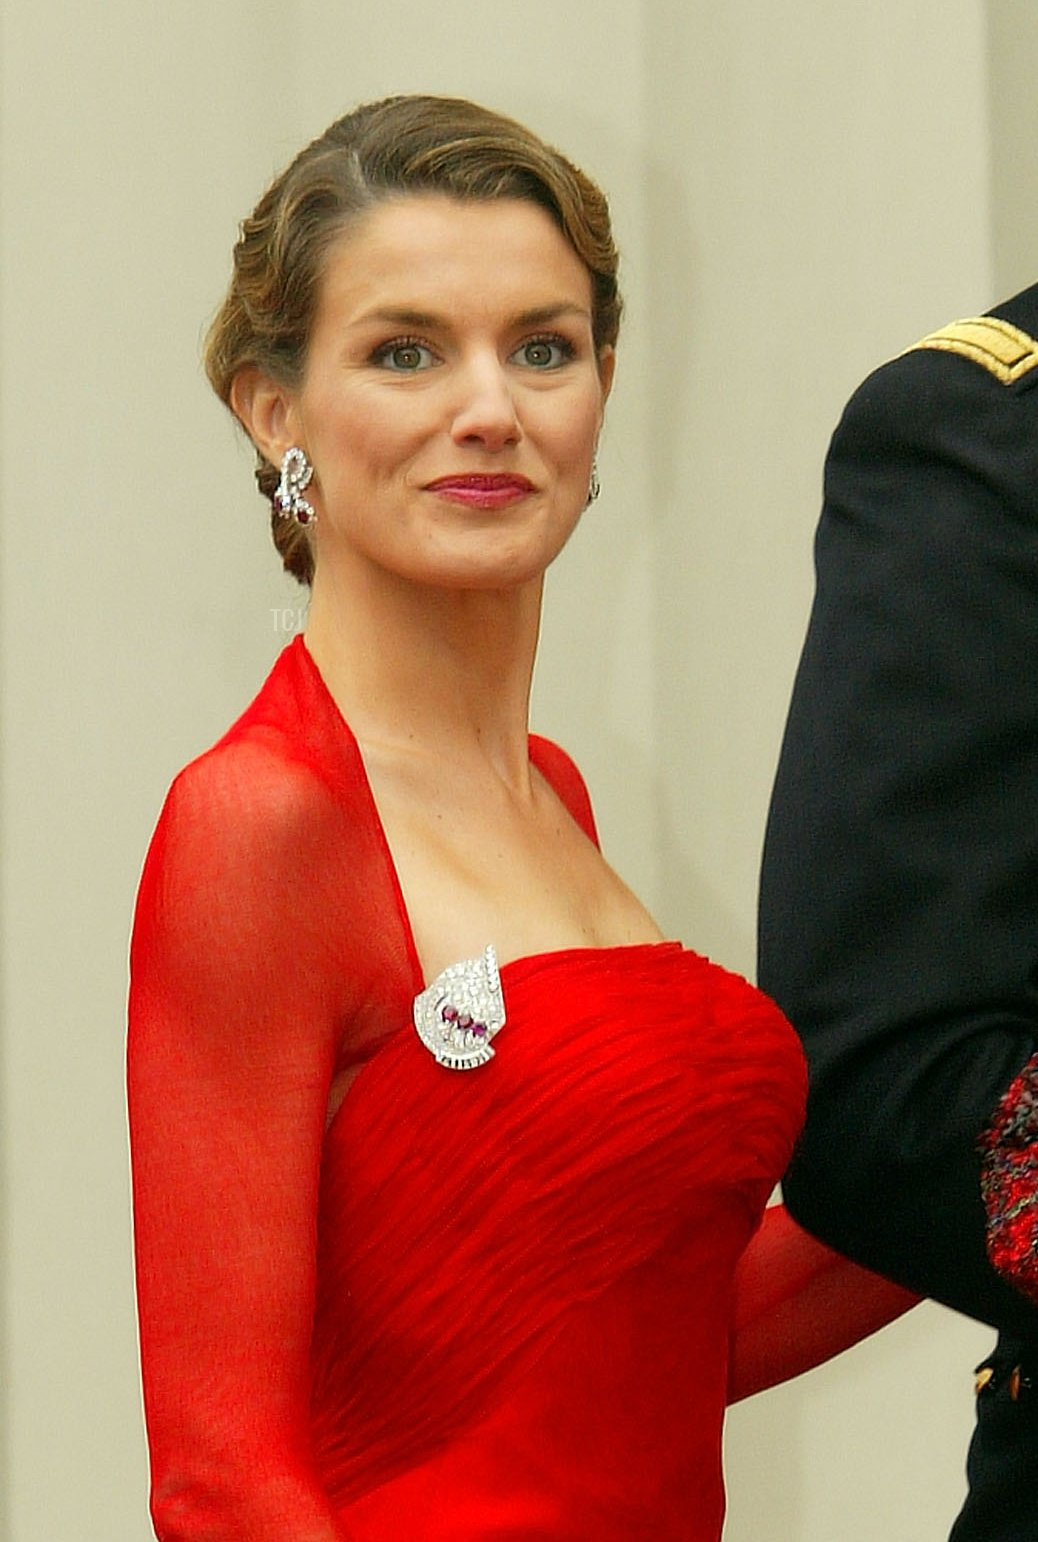 Spanish Crown Prince Felipe and his fiancee Letizia Ortiz Rocasolano arrive to attend the wedding between Danish Crown Prince Frederik and Miss Mary Elizabeth Donaldson in Copenhagen Cathedral May 14, 2004 in Copenhagen, Denmark